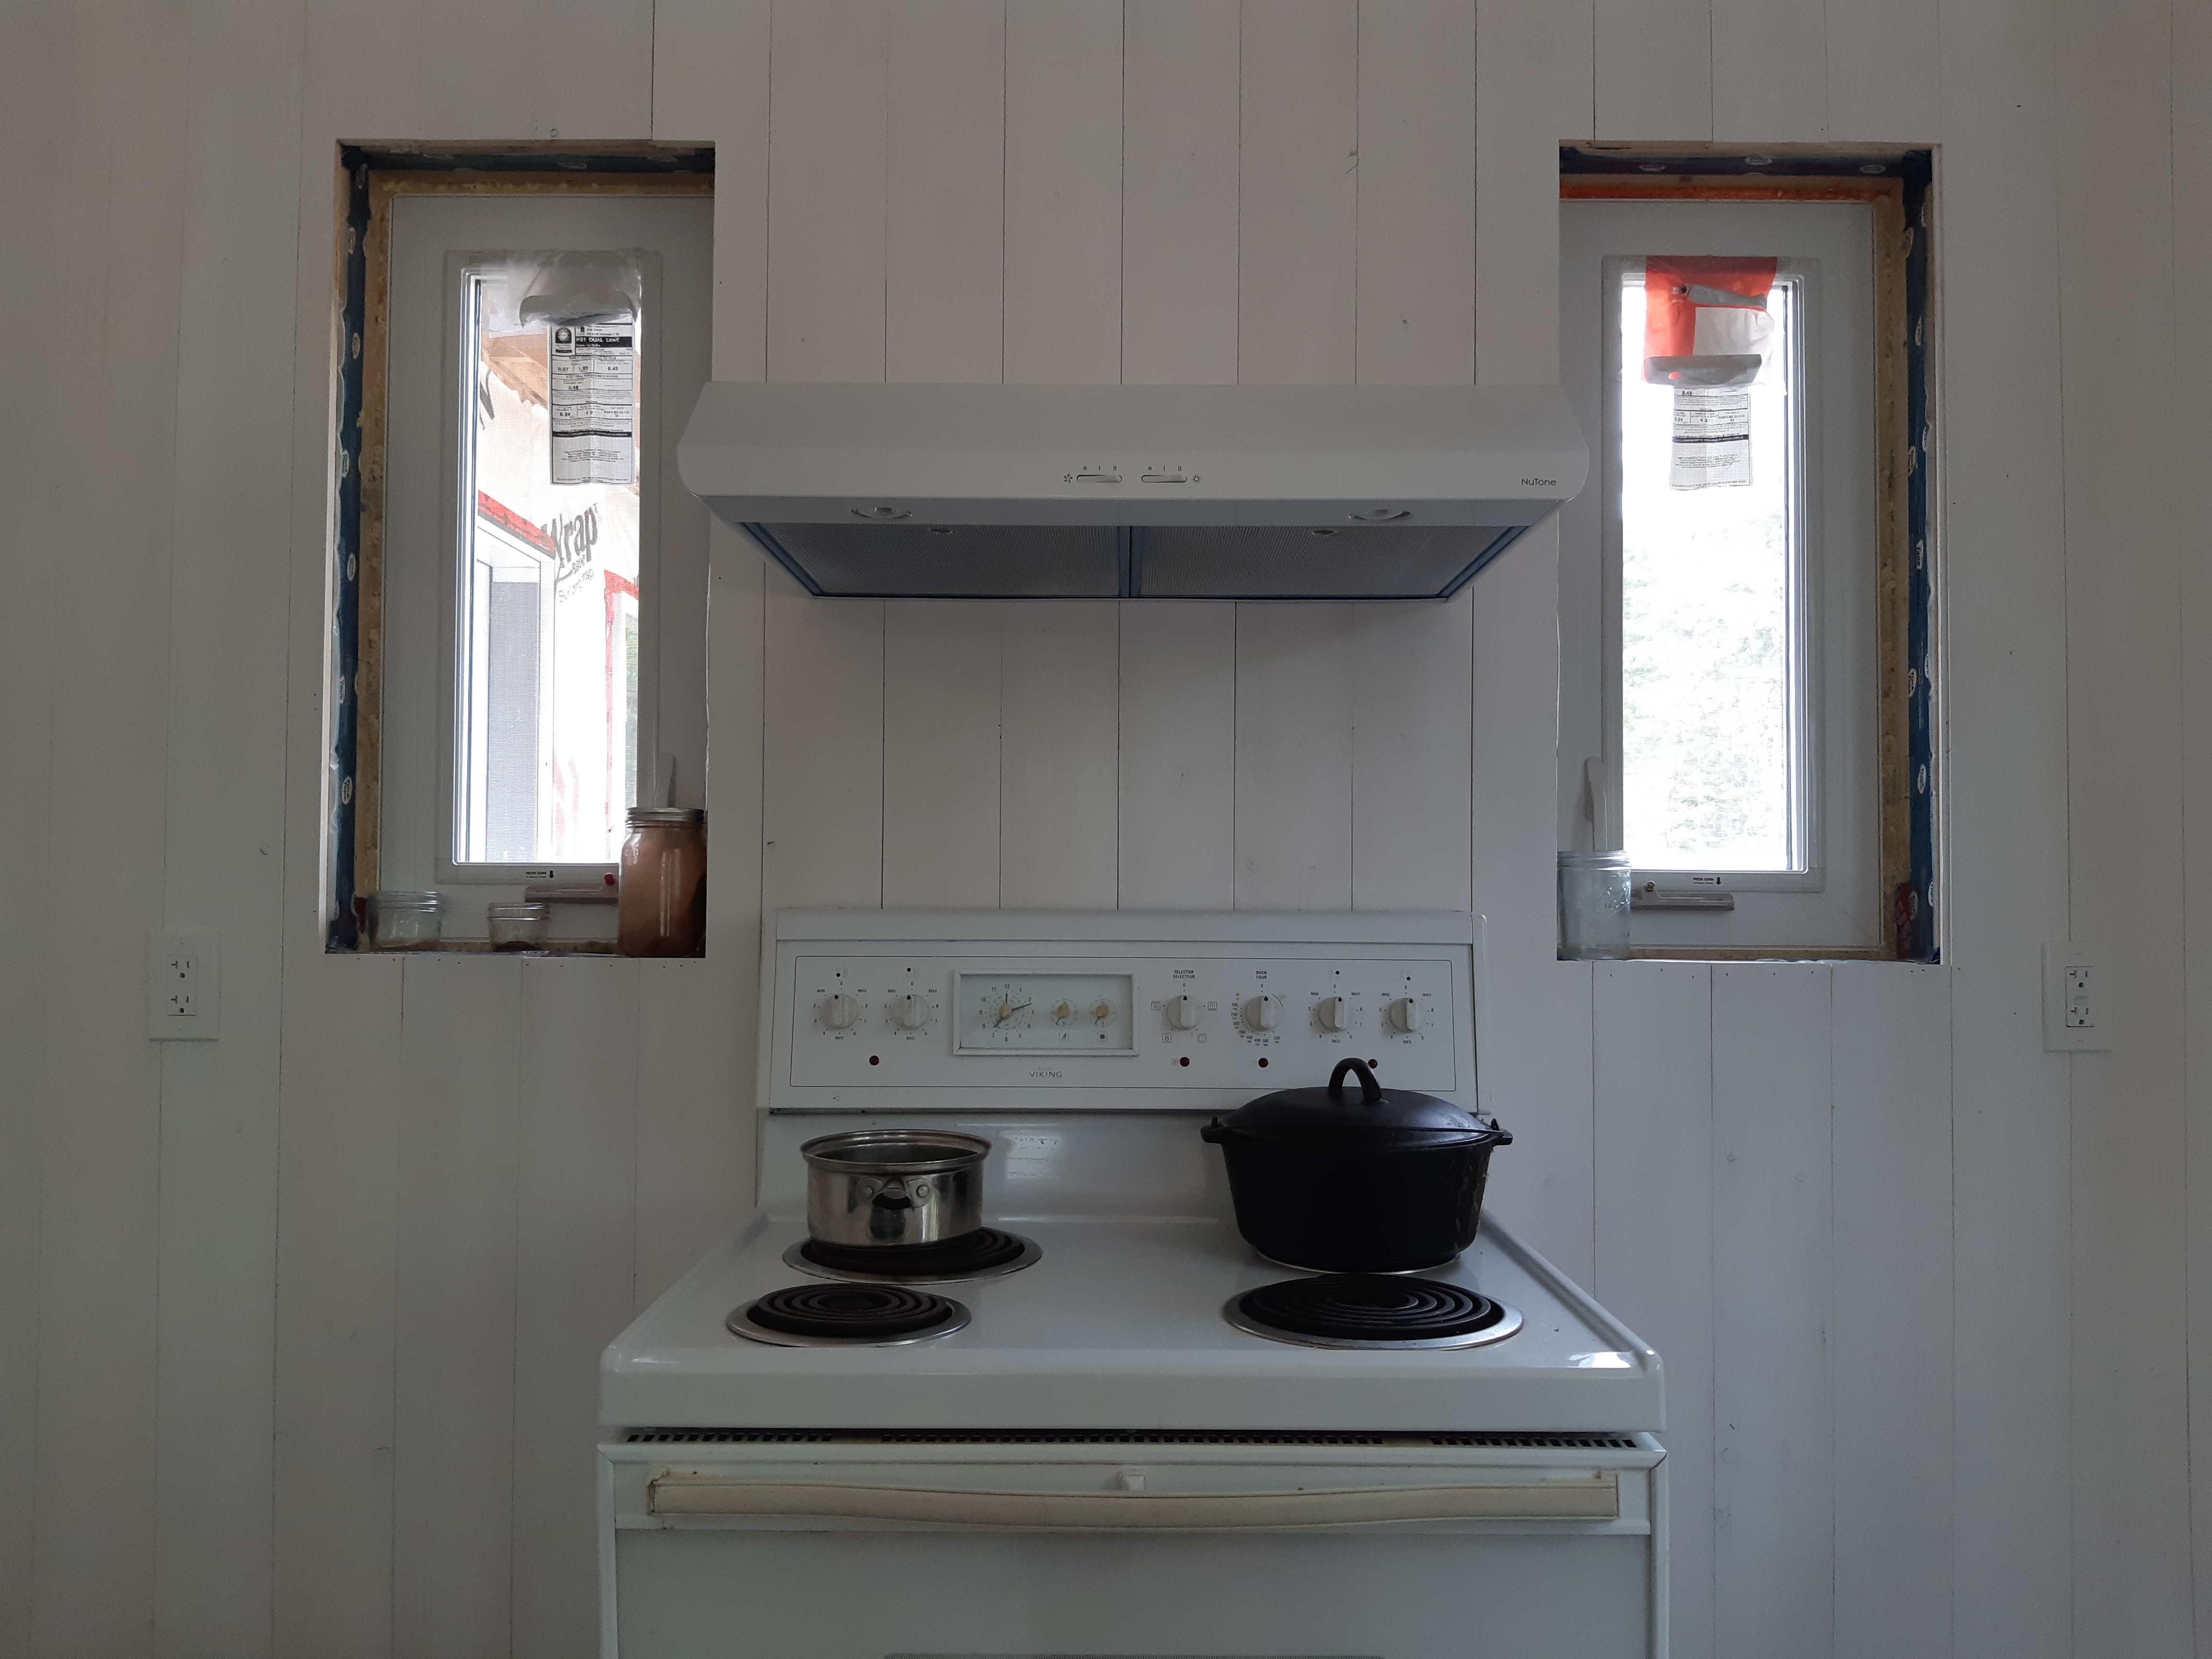 Whitewashed Walls in the Cottage Kitchen